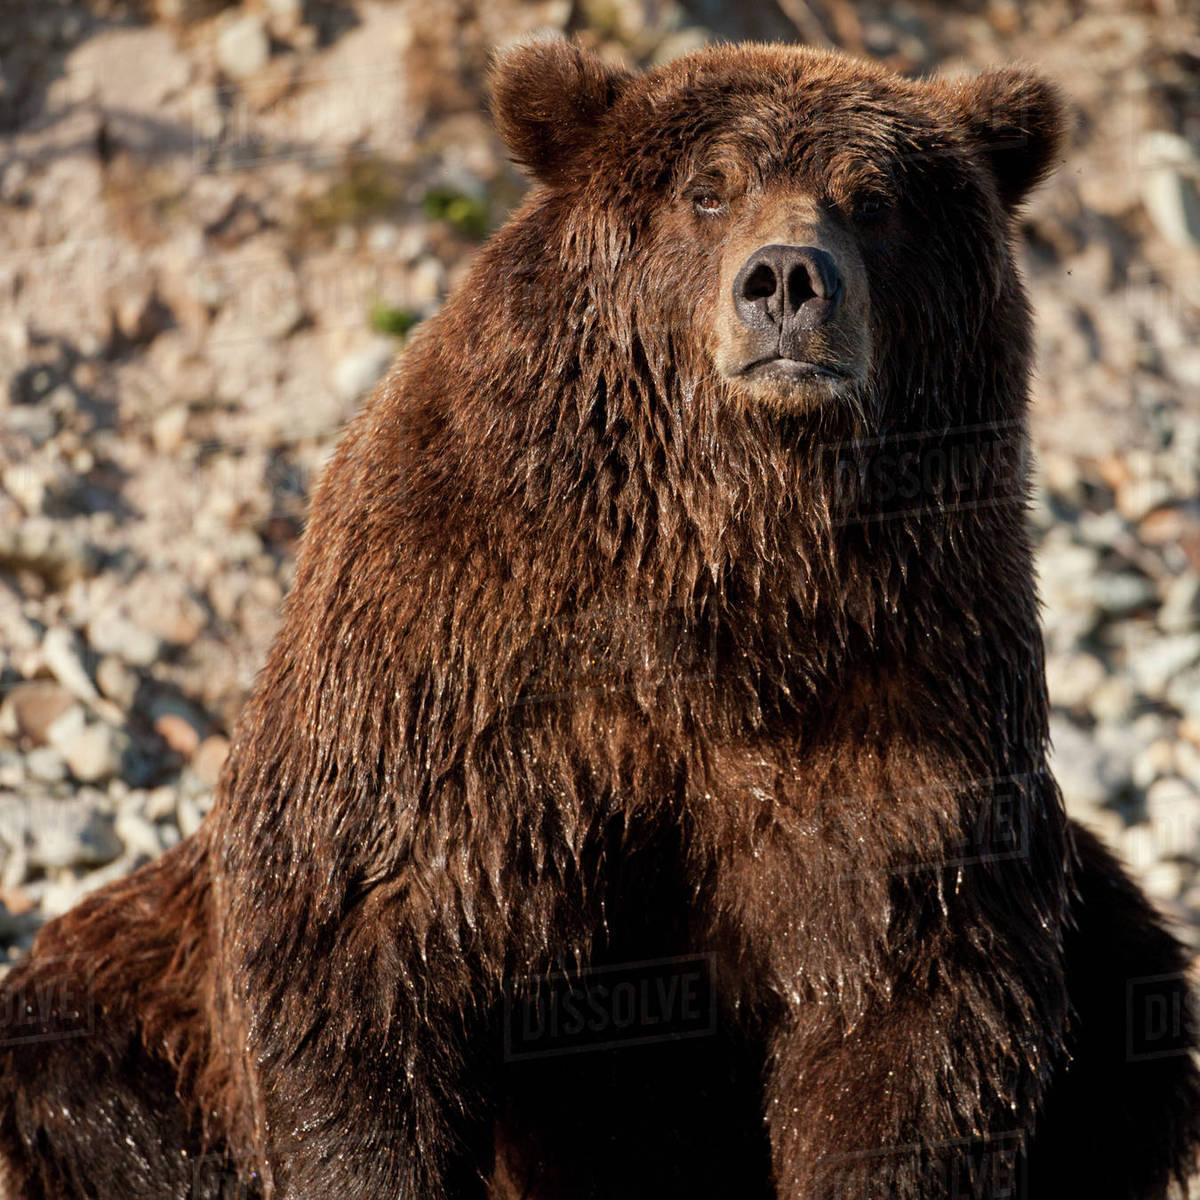 USA, Alaska, Katmai National Park, Close-up portrait of adult male Coastal Brown Bear (Ursus arctos) resting along salmon spawning stream by Kinak Bay Rights-managed stock photo